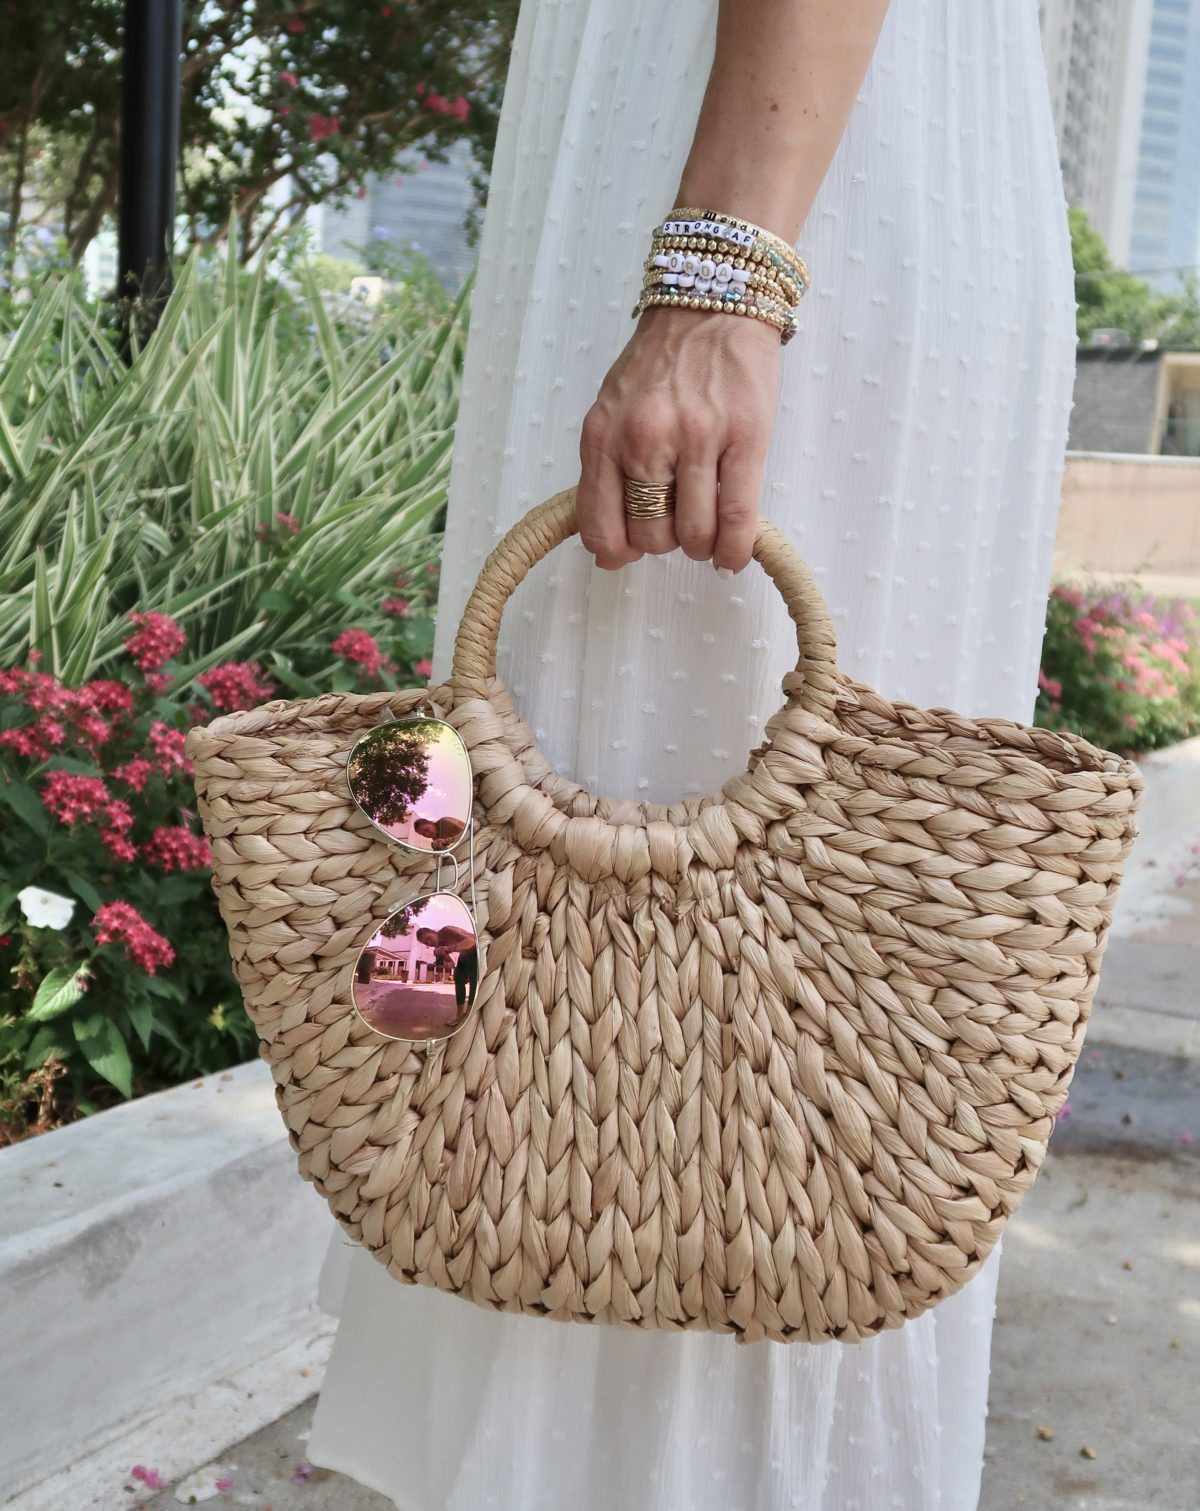 New Summer Styles, Beaded Bracelets, Woven Bag, Pink Sunglasses